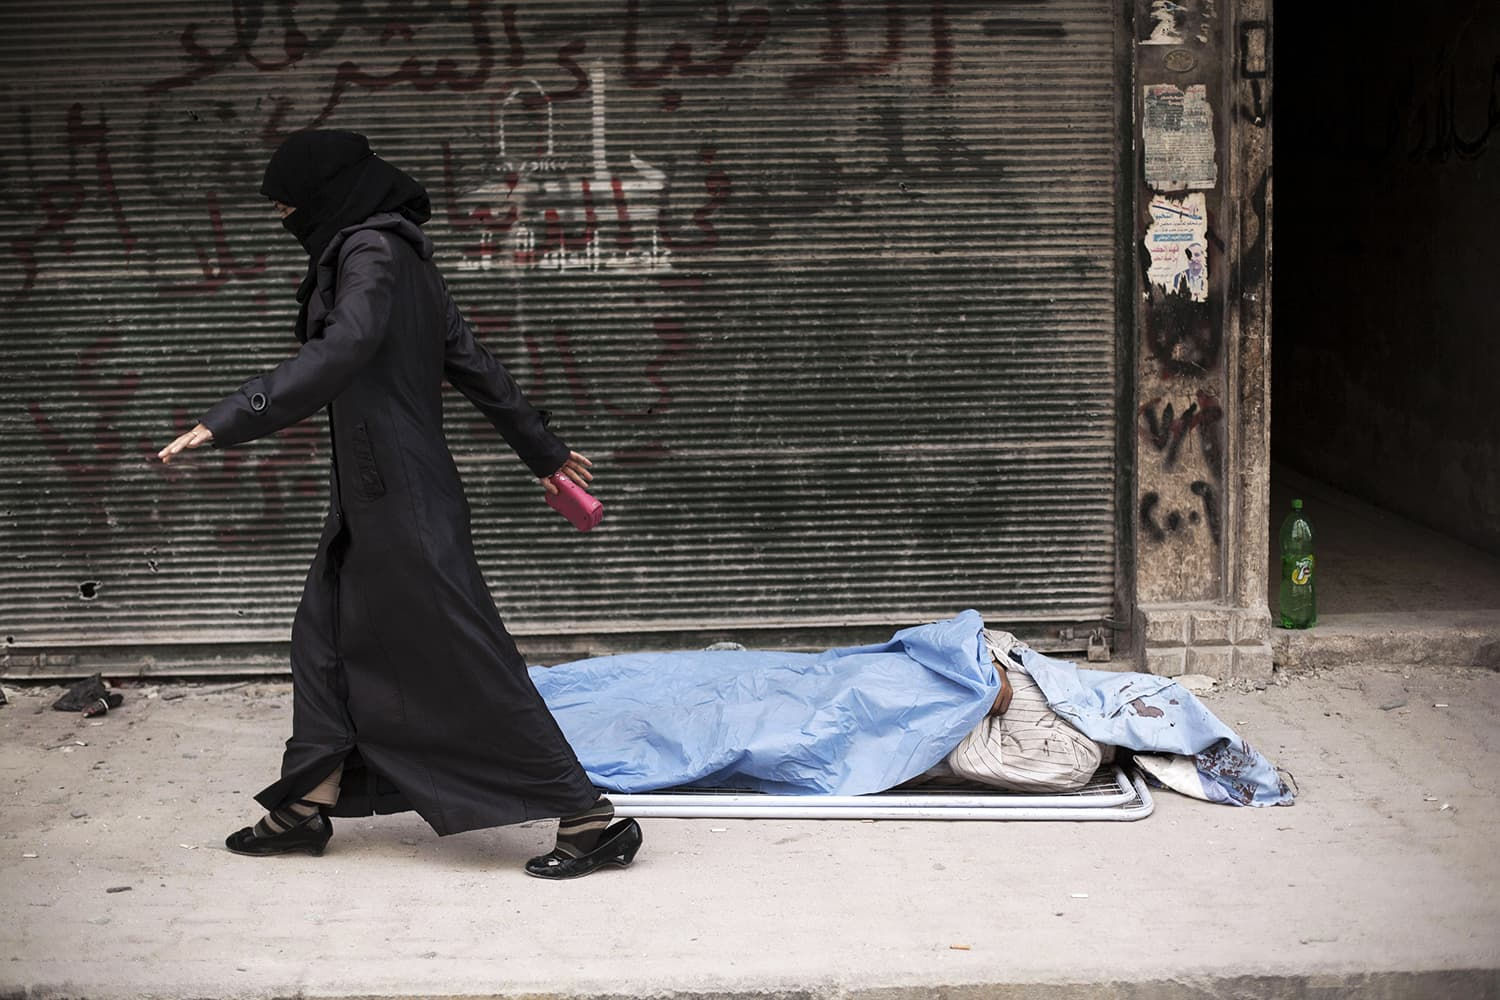 A Syrian woman walks past a body in front of Dar El Shifa Hospital, Aleppo, Syria, Wednesday, Oct. 10, 2012. ─ AP/File